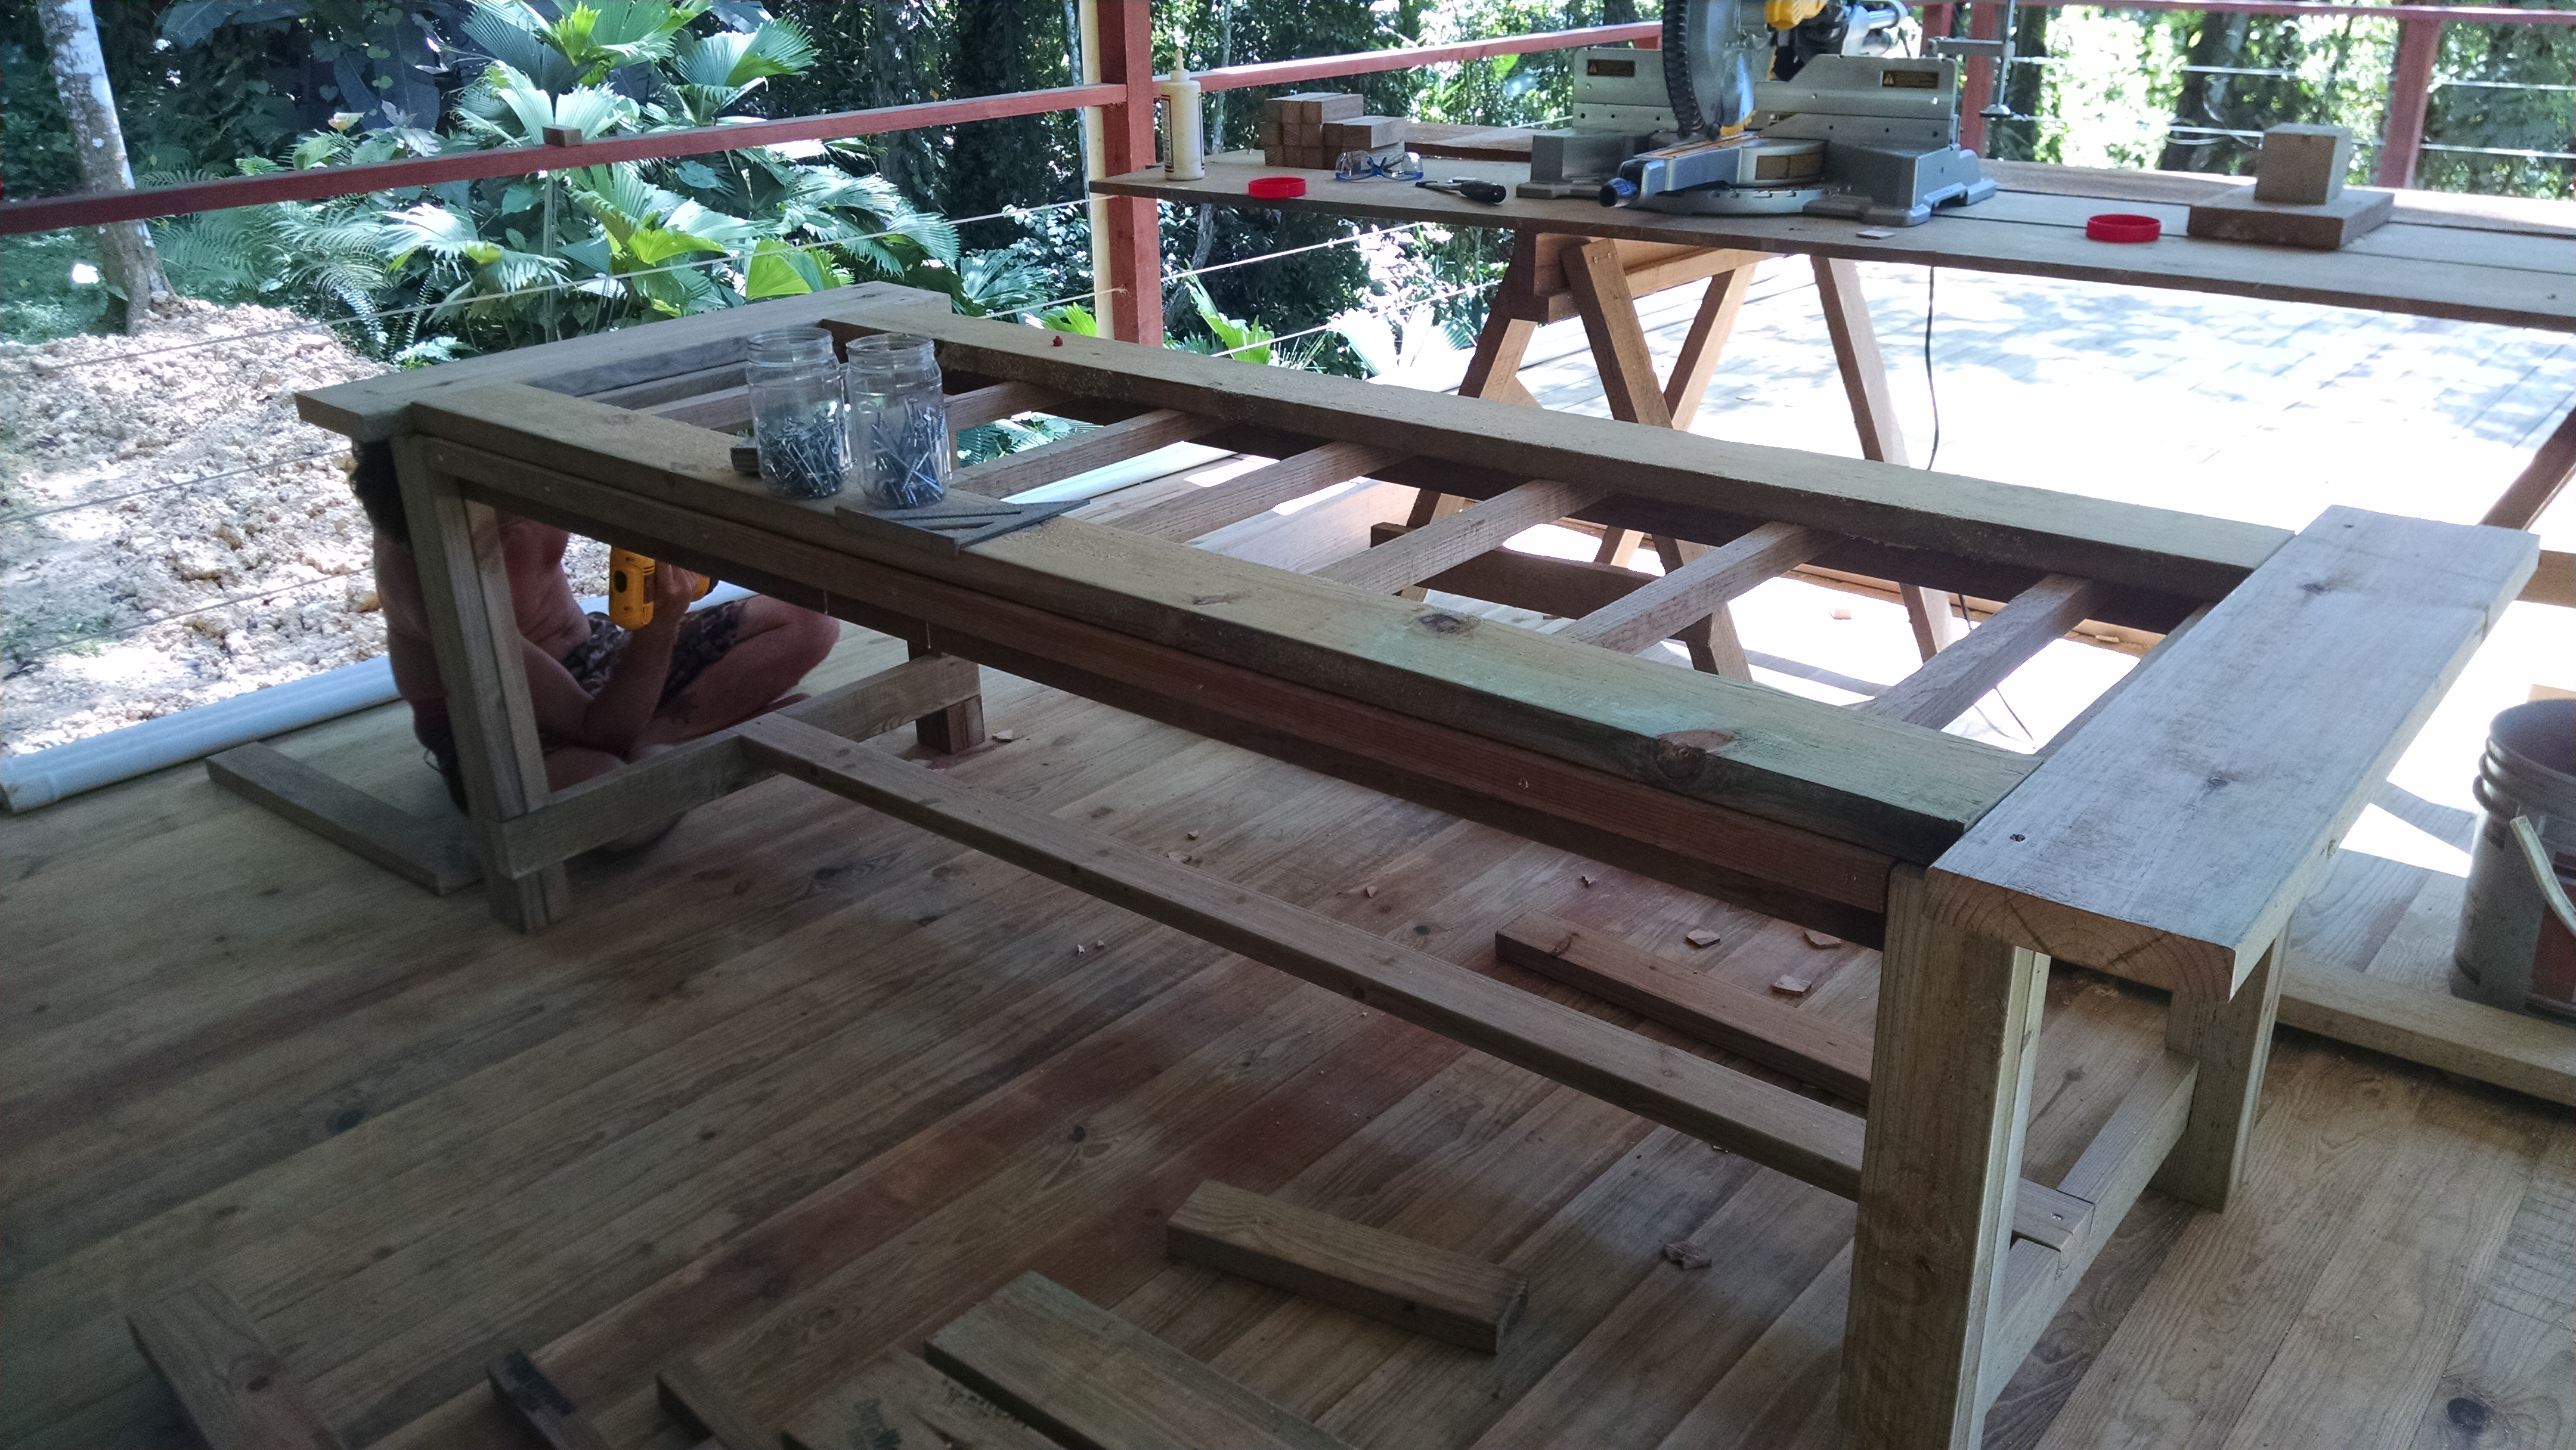 Photo of New restaurant table in progress